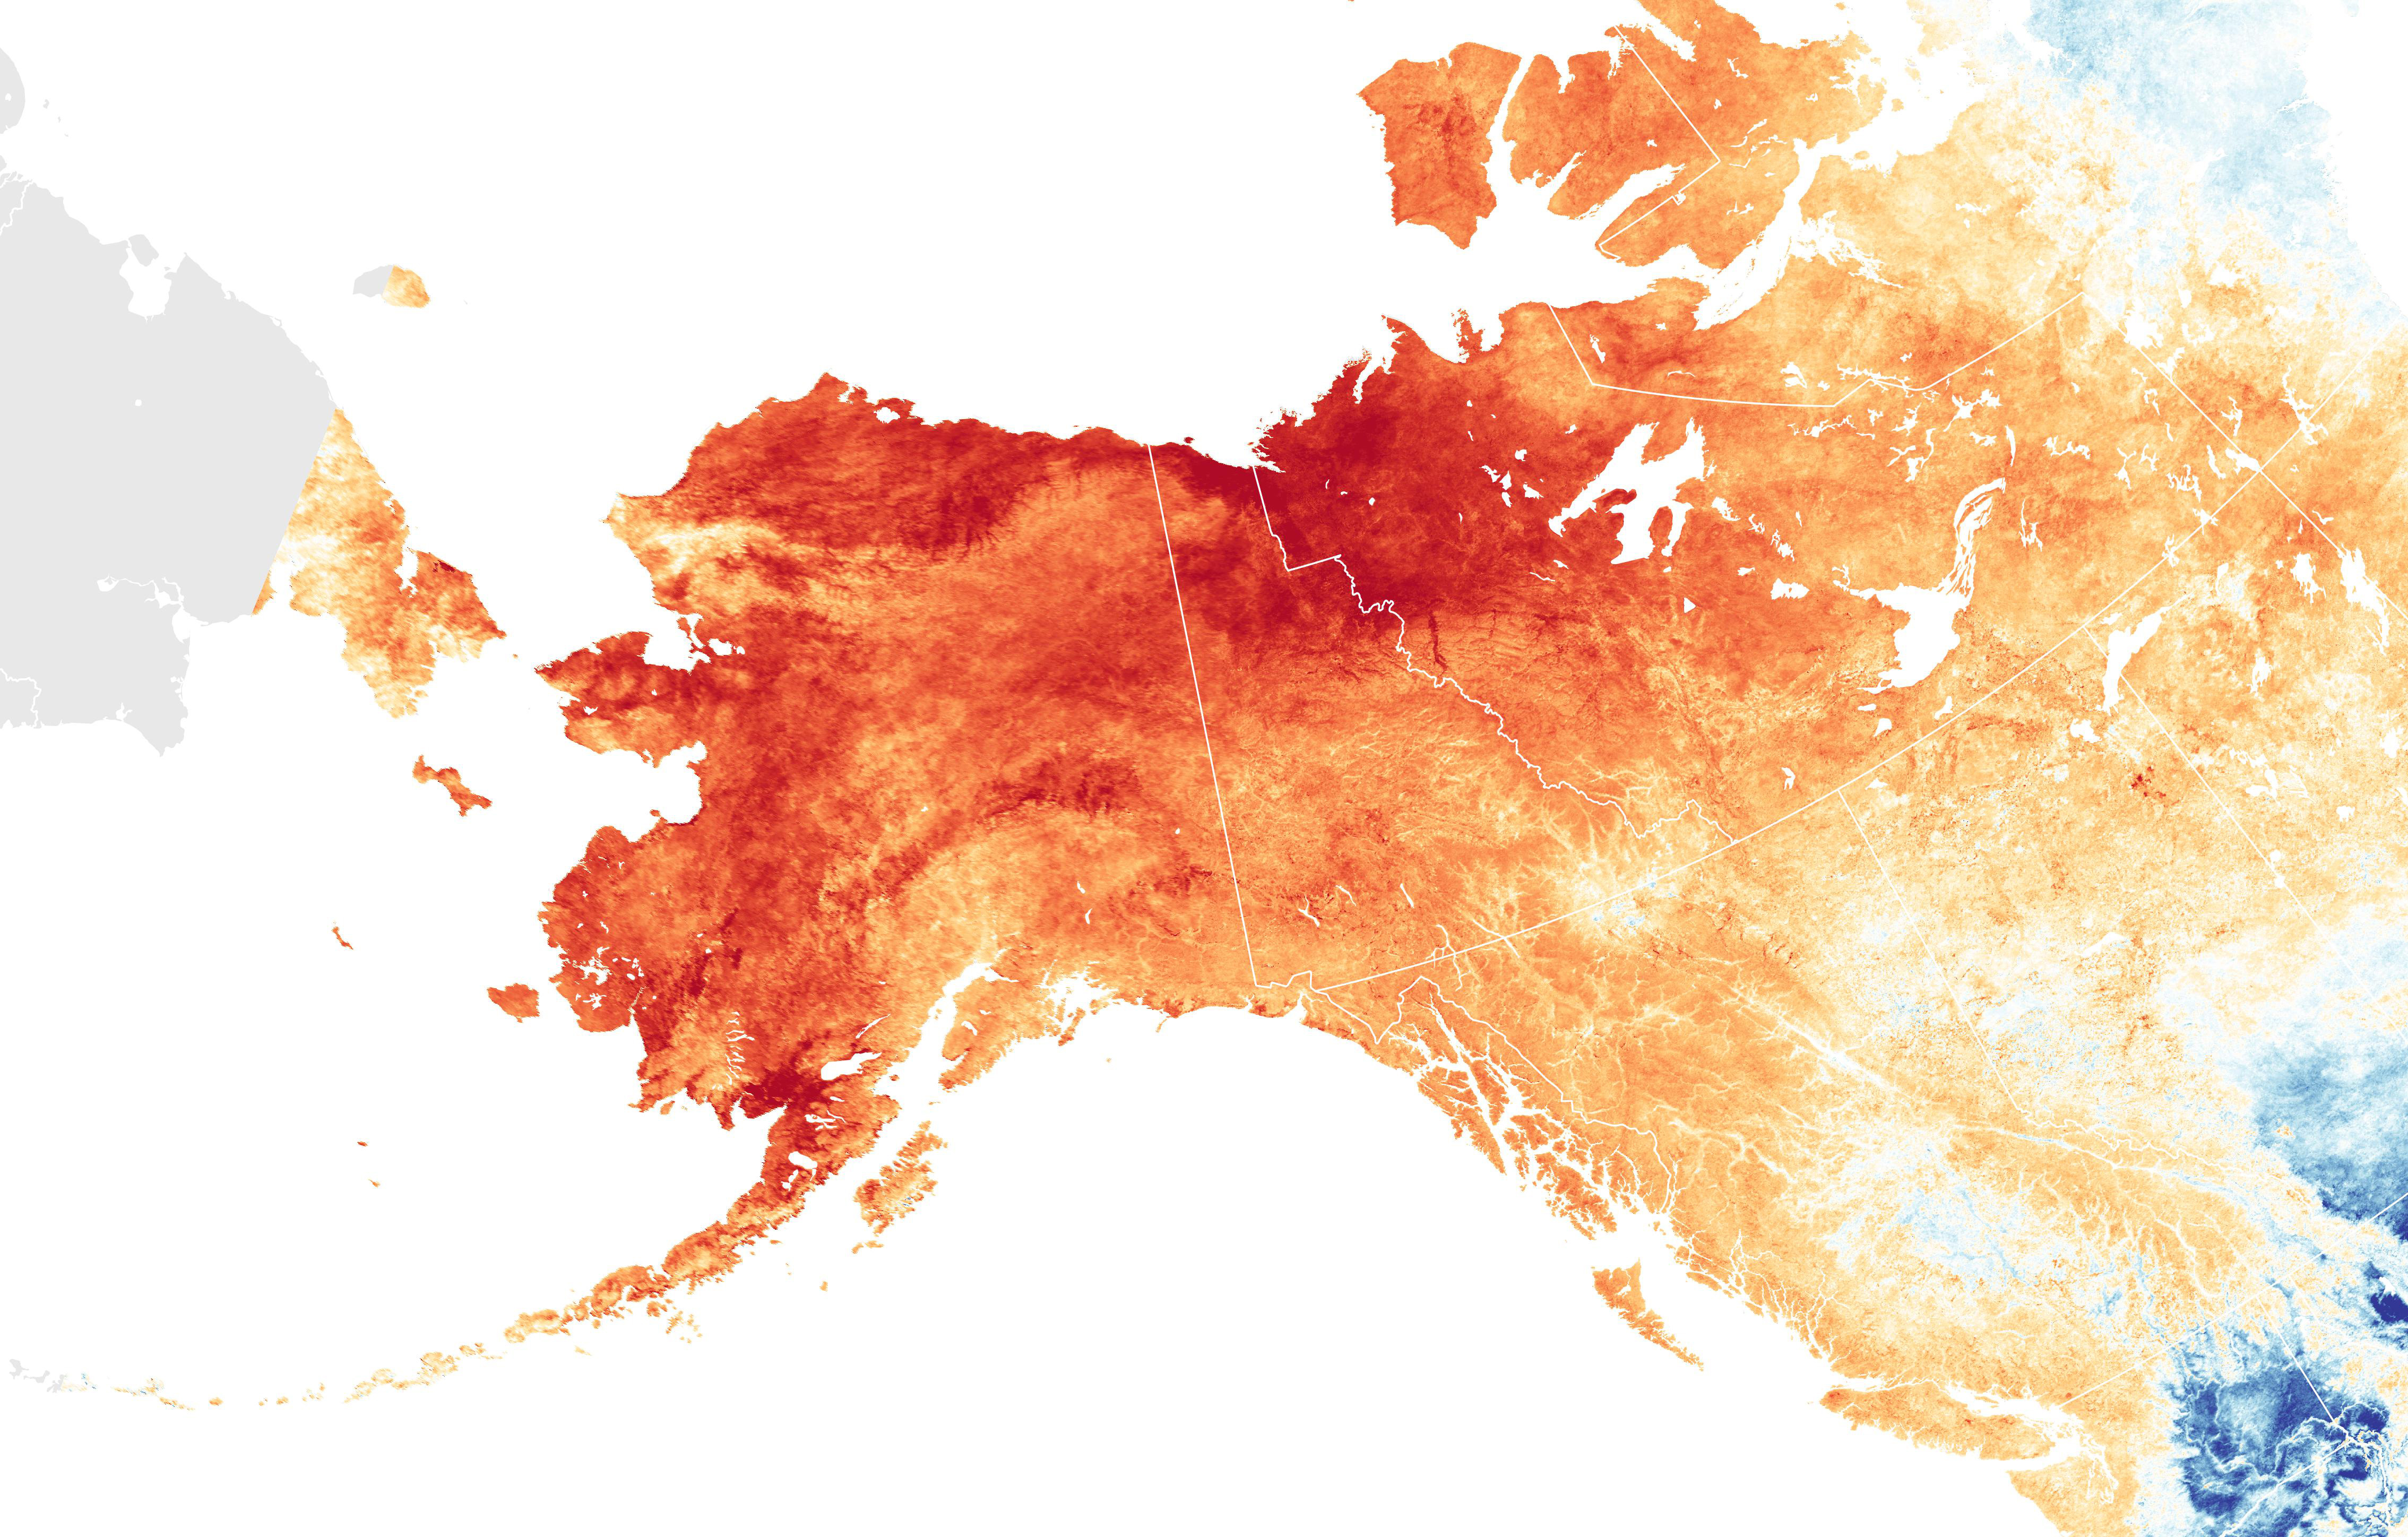 Alaska Hit With a Hot March on map of alaska road system, map of ohio with cities and towns, map of deadhorse alaska, map of kenai peninsula alaska, map of wales with towns and cities, map of tennessee with cities and towns, map of germany with cities and towns, map of british columbia canada with cities, map of canada provinces, map of north america, map of alaska villages, map of alaska and washington state, map of palmer alaska, map of alaska coastline, map of maine with cities and towns, map of alaska inside passage, map of africa, map of homer alaska, map of united states with cities, map of alaska showing cities,